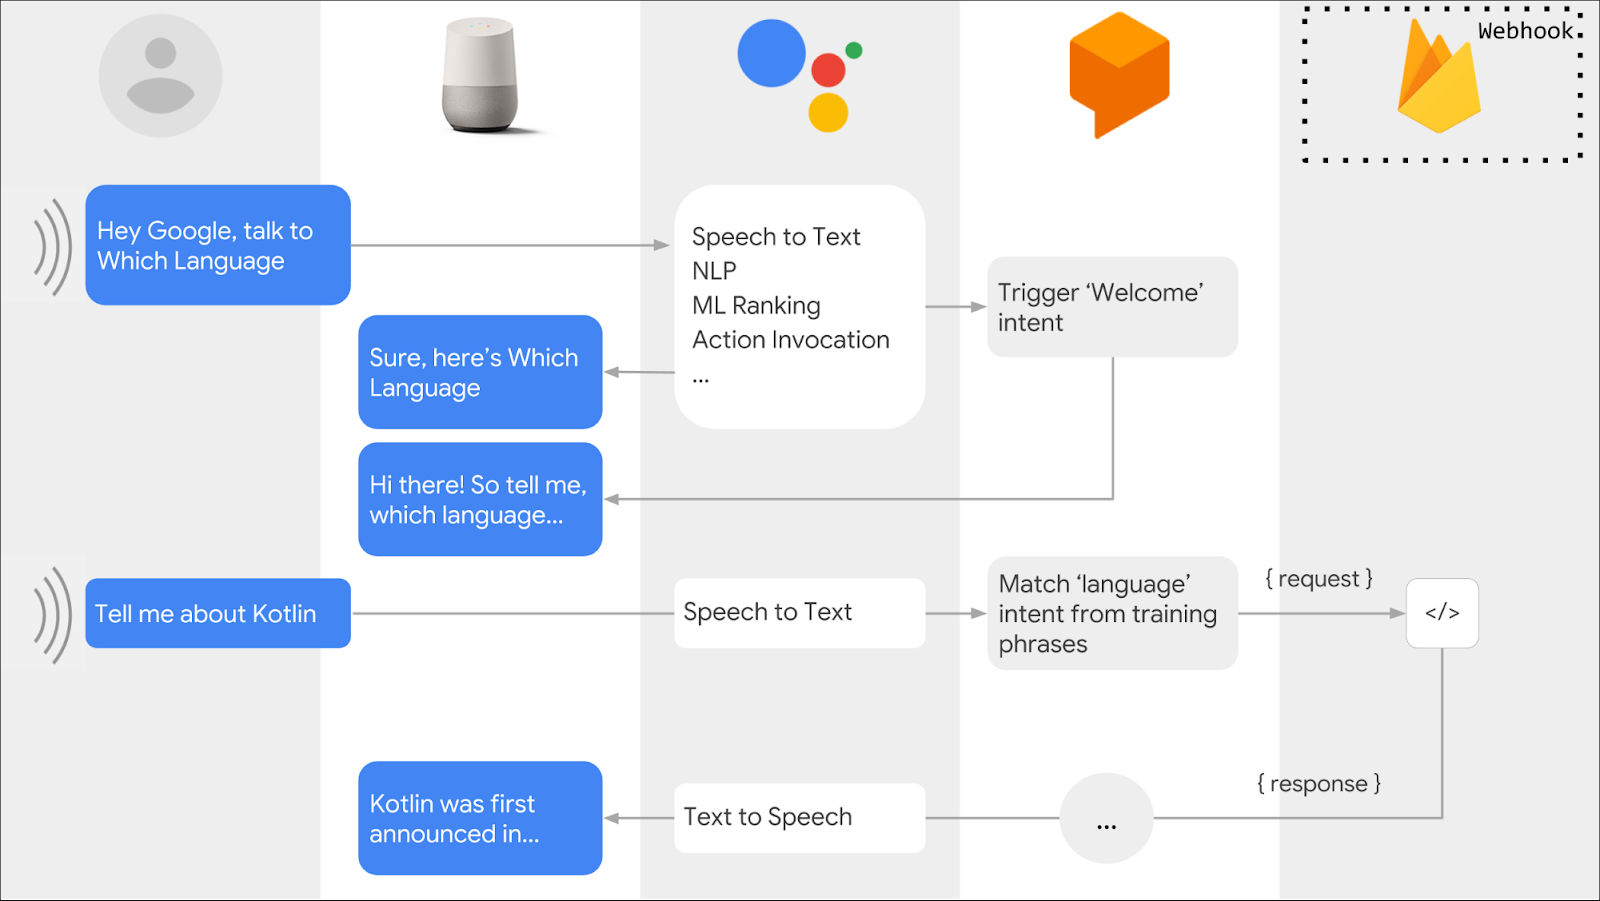 How to implement local fulfillment for Google Assistant